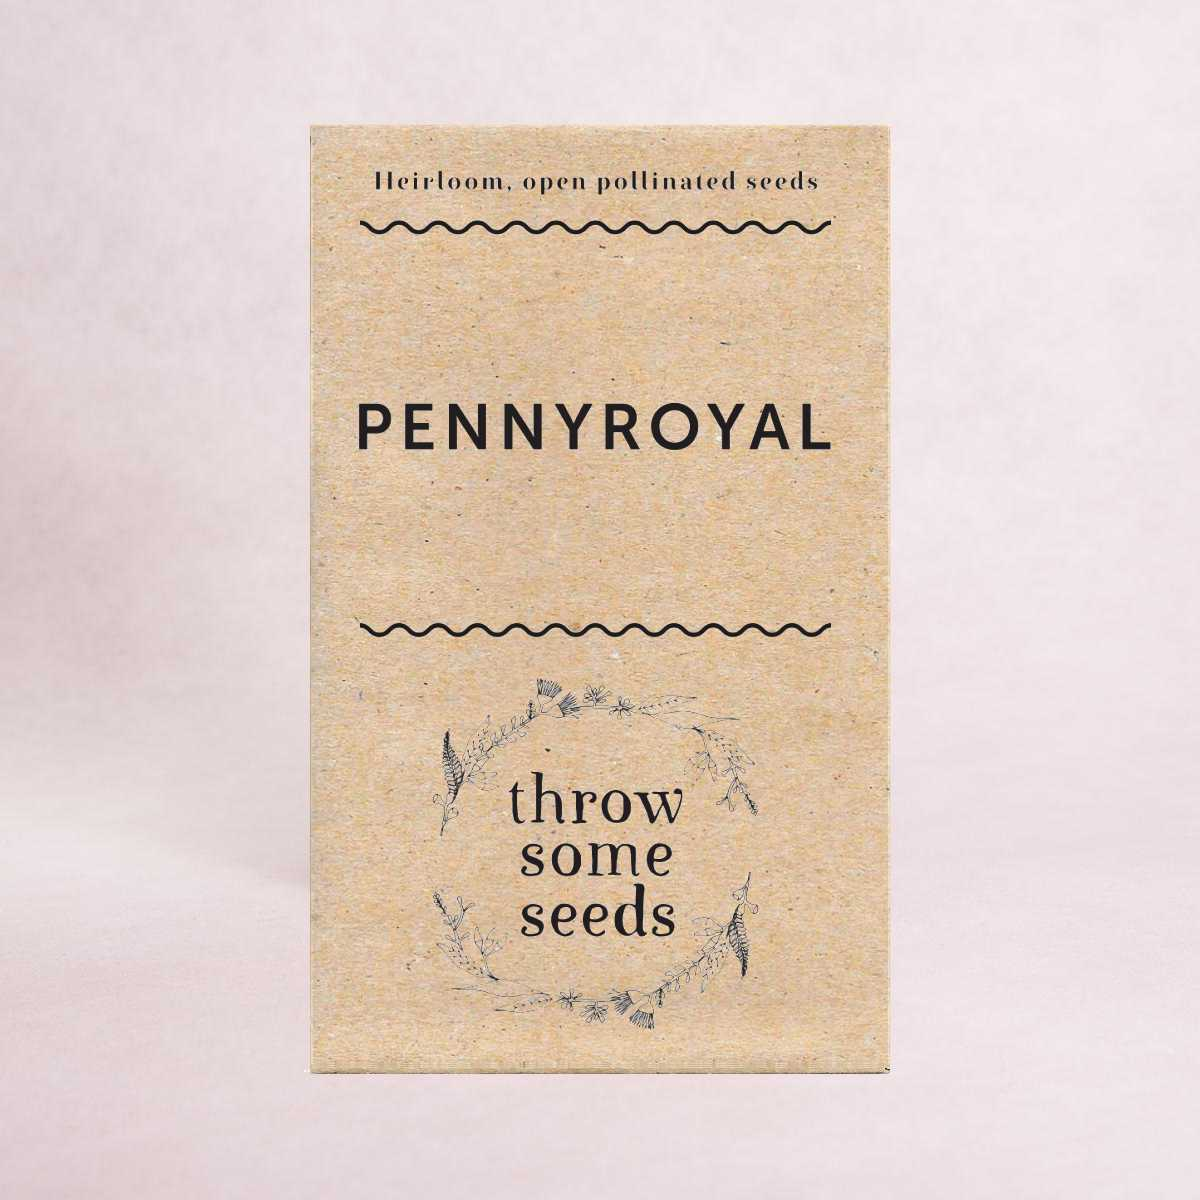 Pennyroyal Seeds - Seeds - Throw Some Seeds - Australian gardening gifts and eco products online!